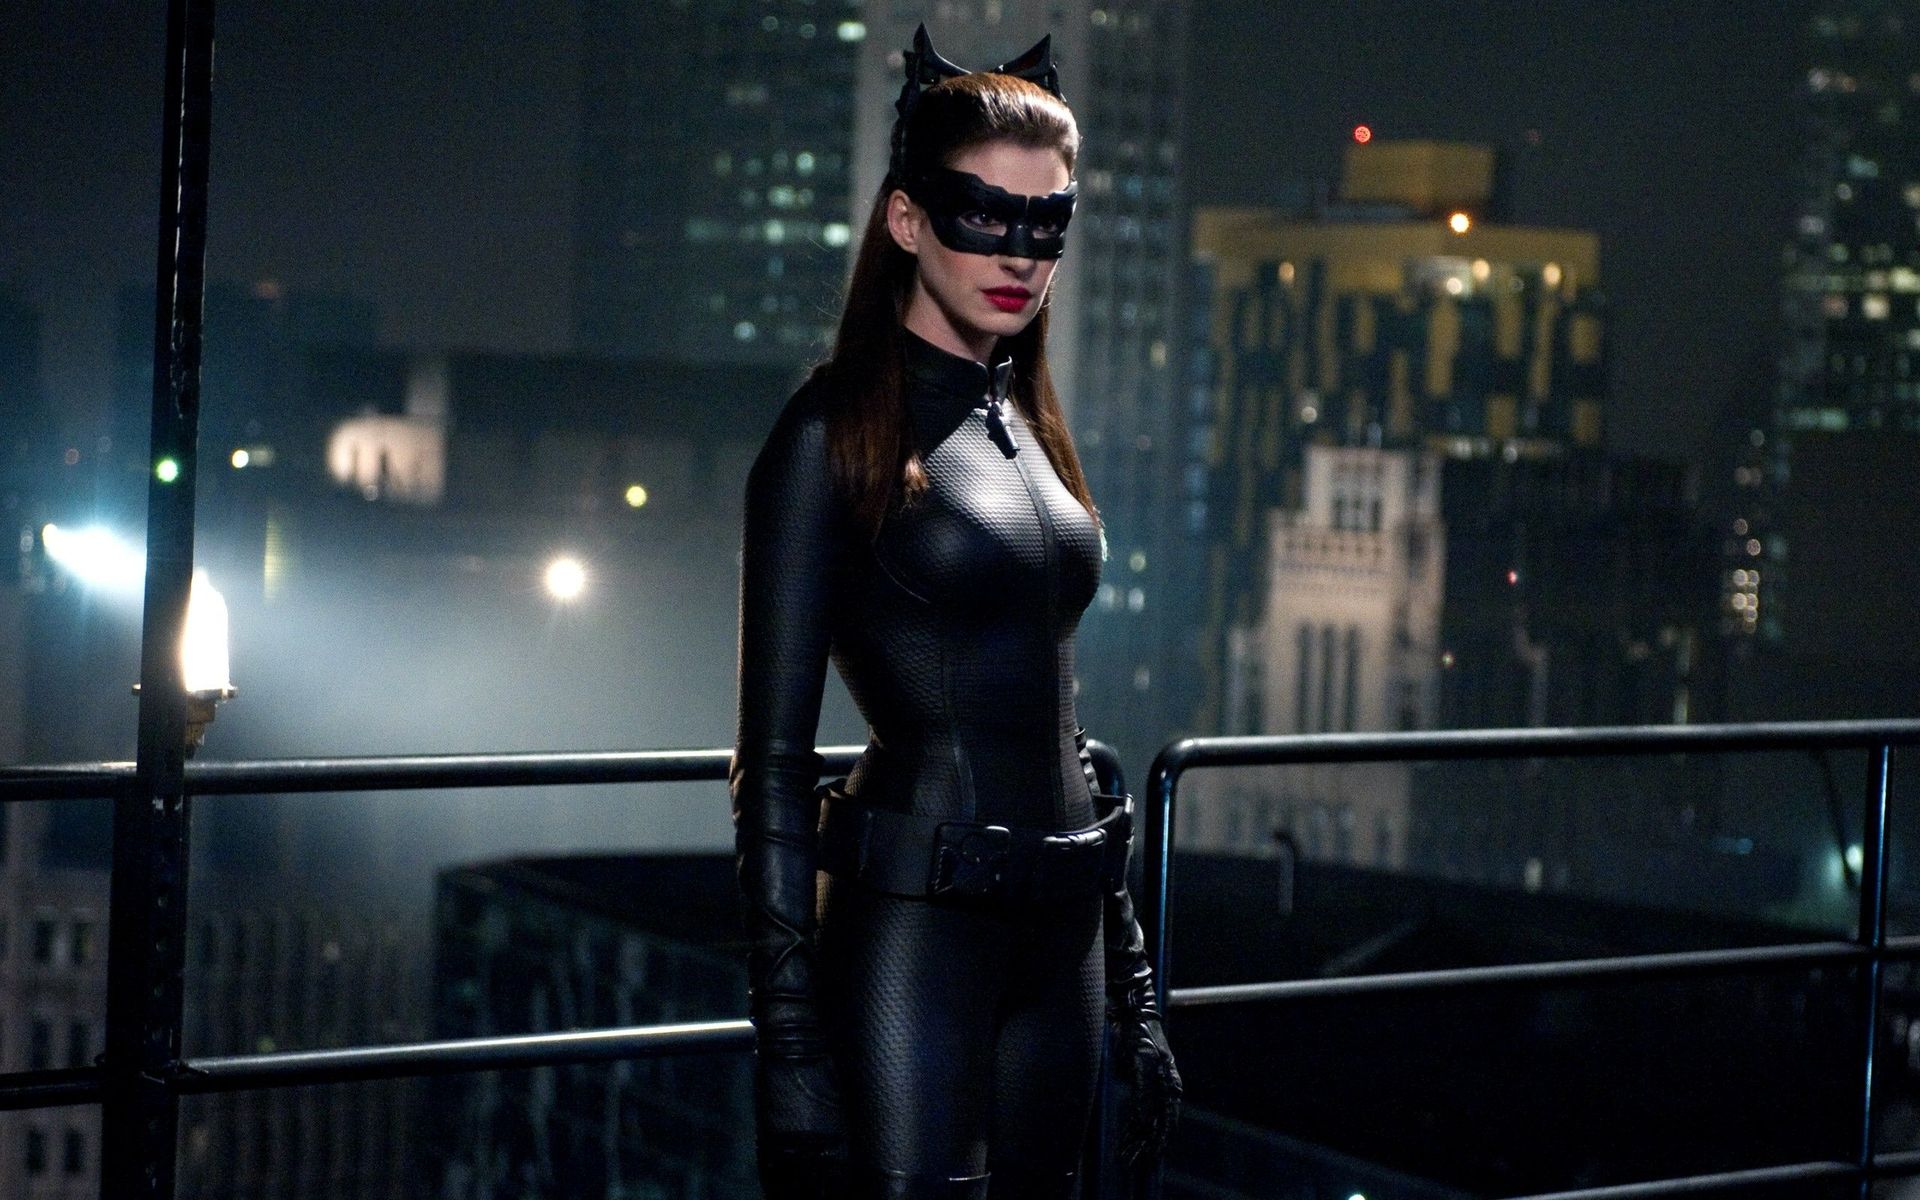 You dark knight rises anne hathaway as catwoman really